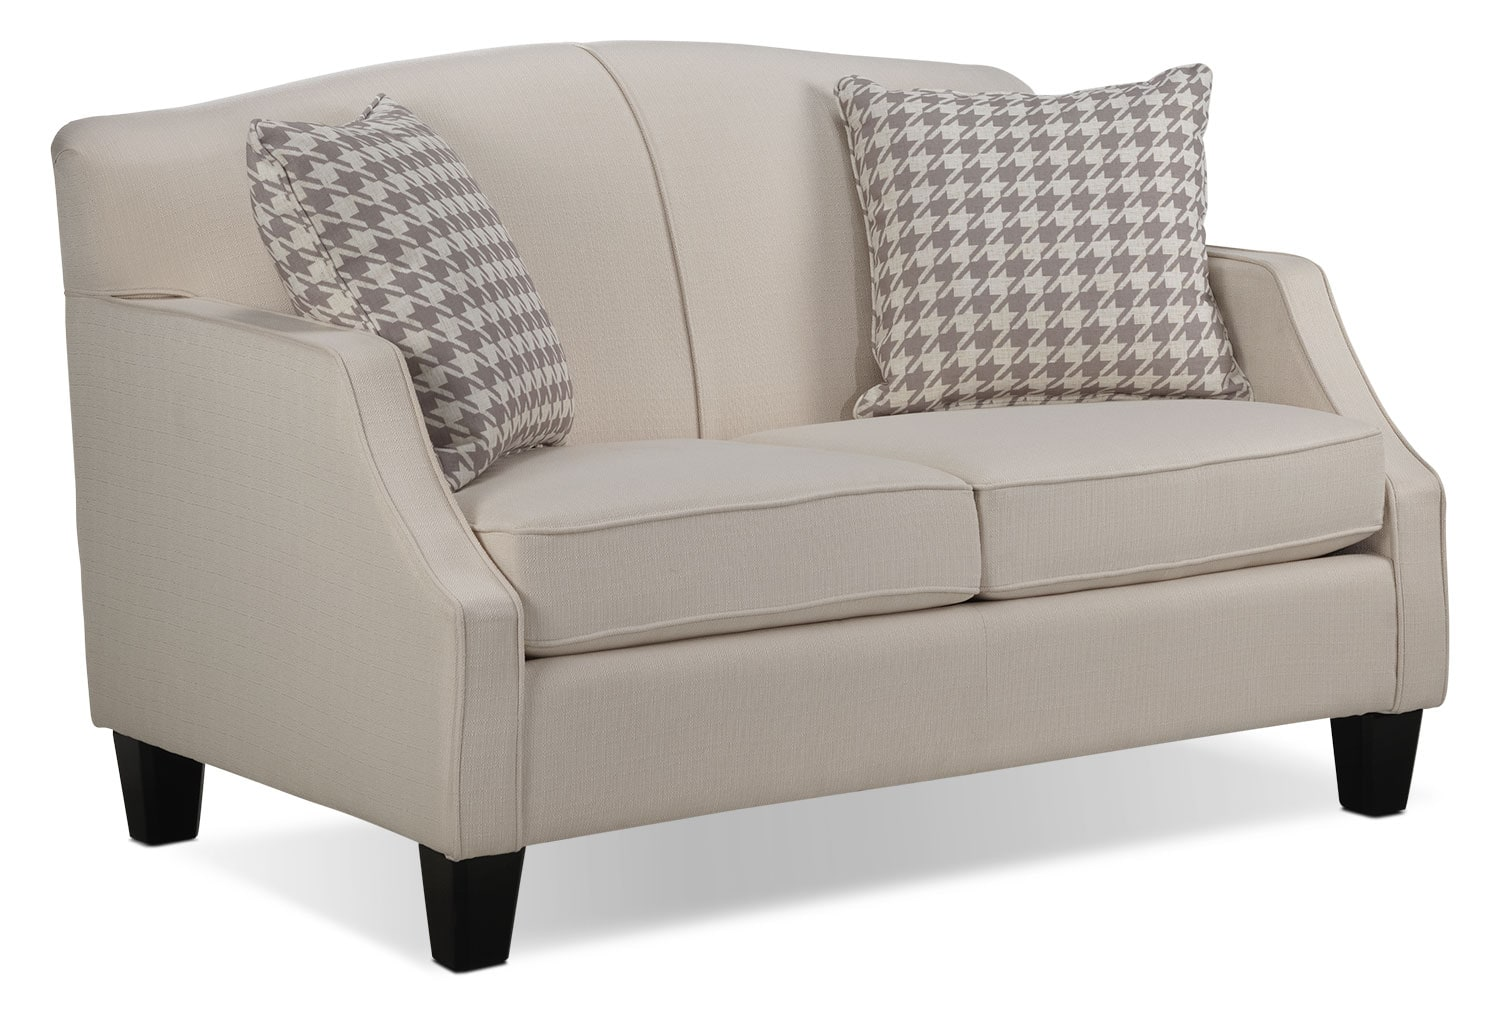 Living Room Furniture - Klein Loveseat - Ivory